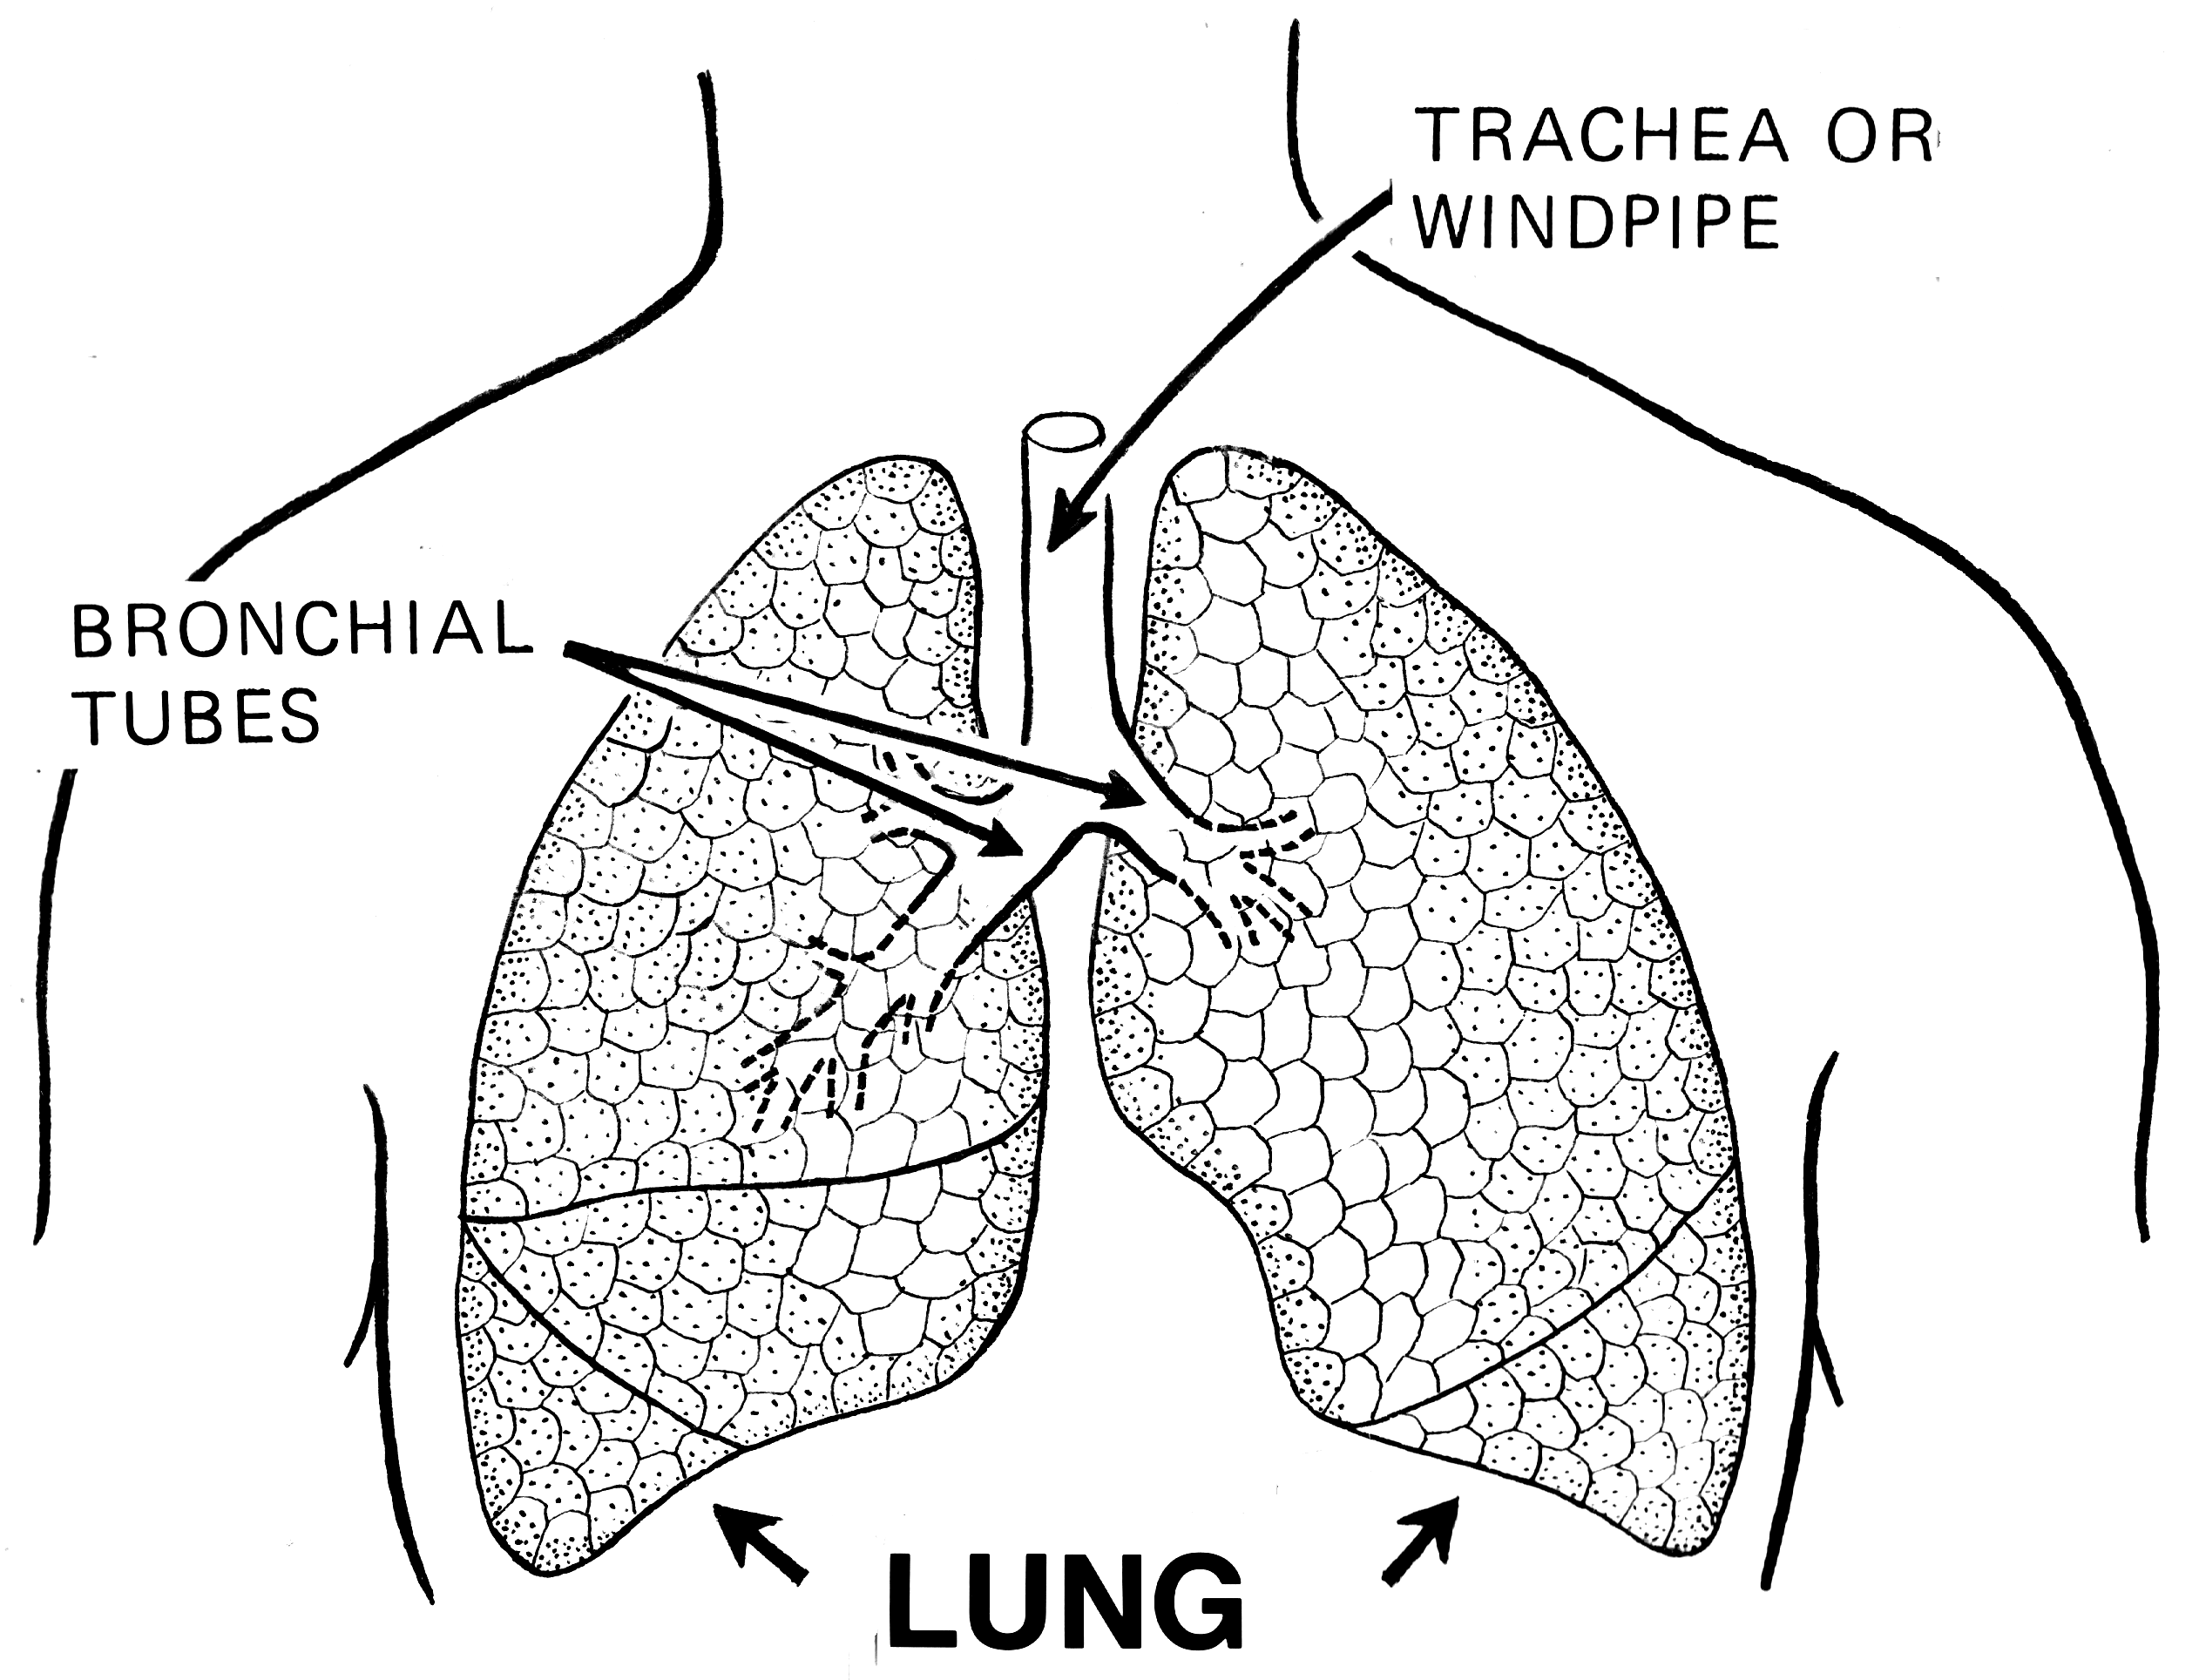 Human lungs, bronchial tubes, and trachea